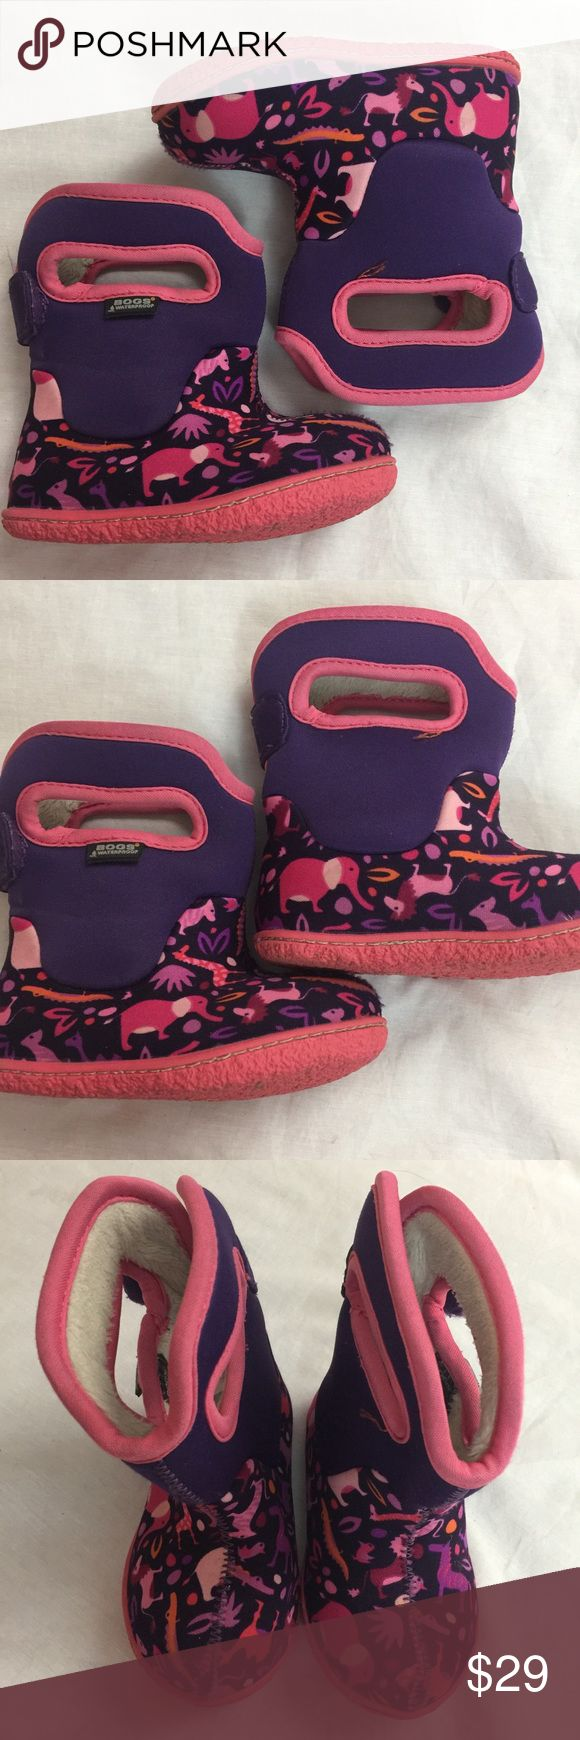 Toddler size 5 Adorable animal print Bog boots Toddler size 5  Adorable animal print Bog boots  Bright pink & purple boots Lined booty  Waterproof Great condition, minor wear from use. Debris on the soles.  Love these boots! Great for excursions with your little one. Lots of life left! Bogs Shoes Boots